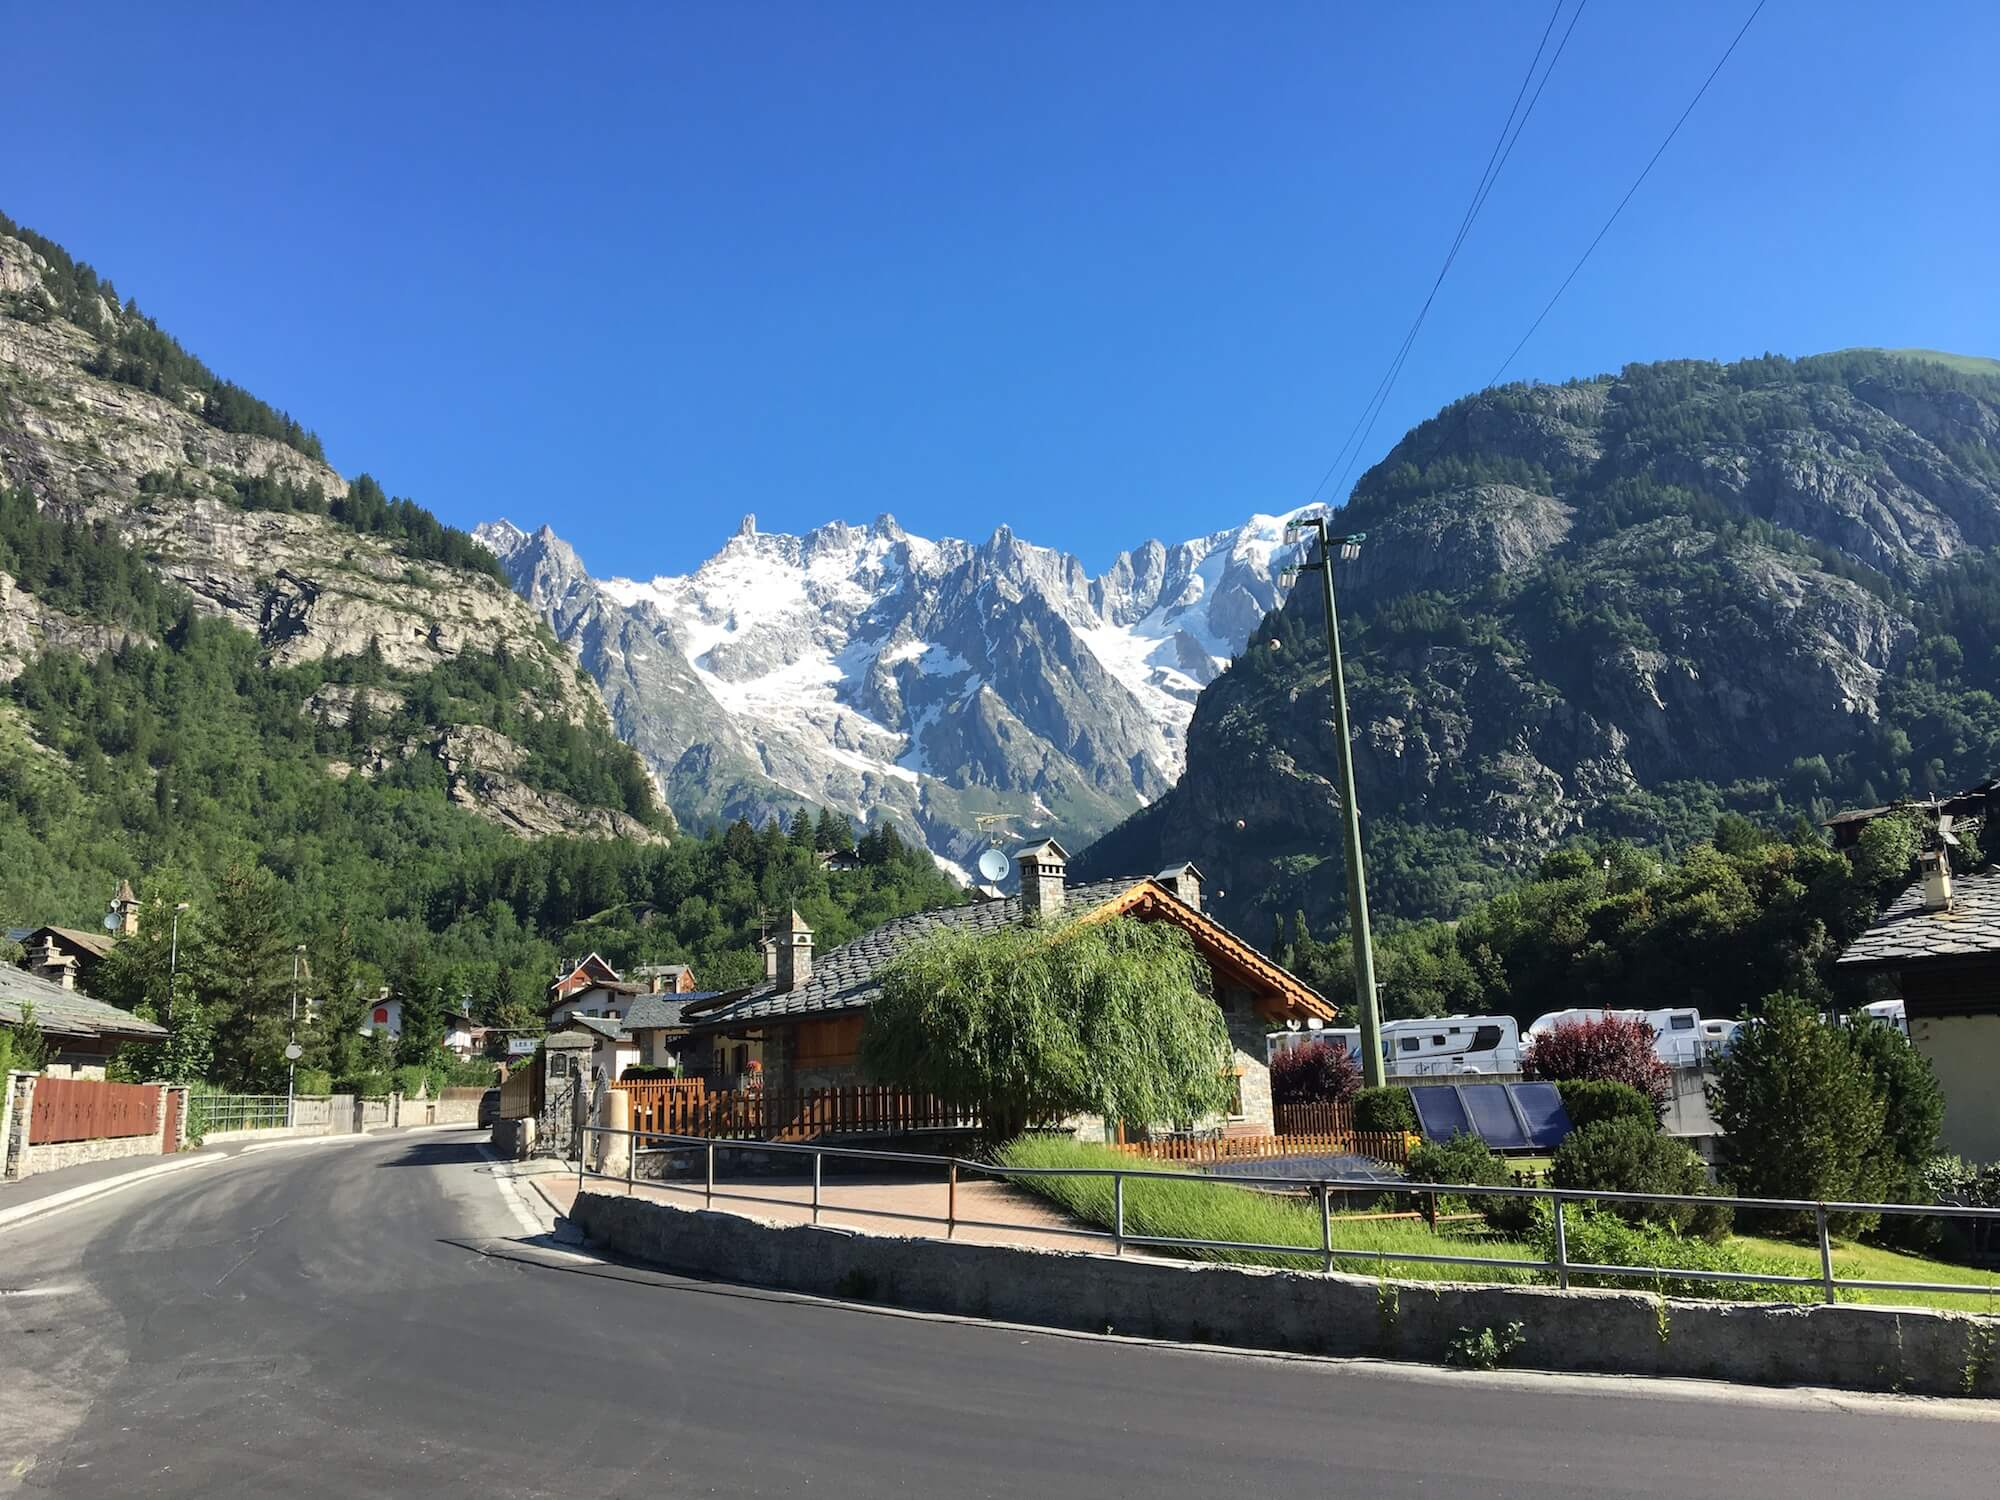 Courmayeur:  Population of 2,800, this is the Italian gateway town to the Alps. It is a great stop-over location along the TMB which a variety of accommodation options ranging from simple B&Bs to more premium hotels.